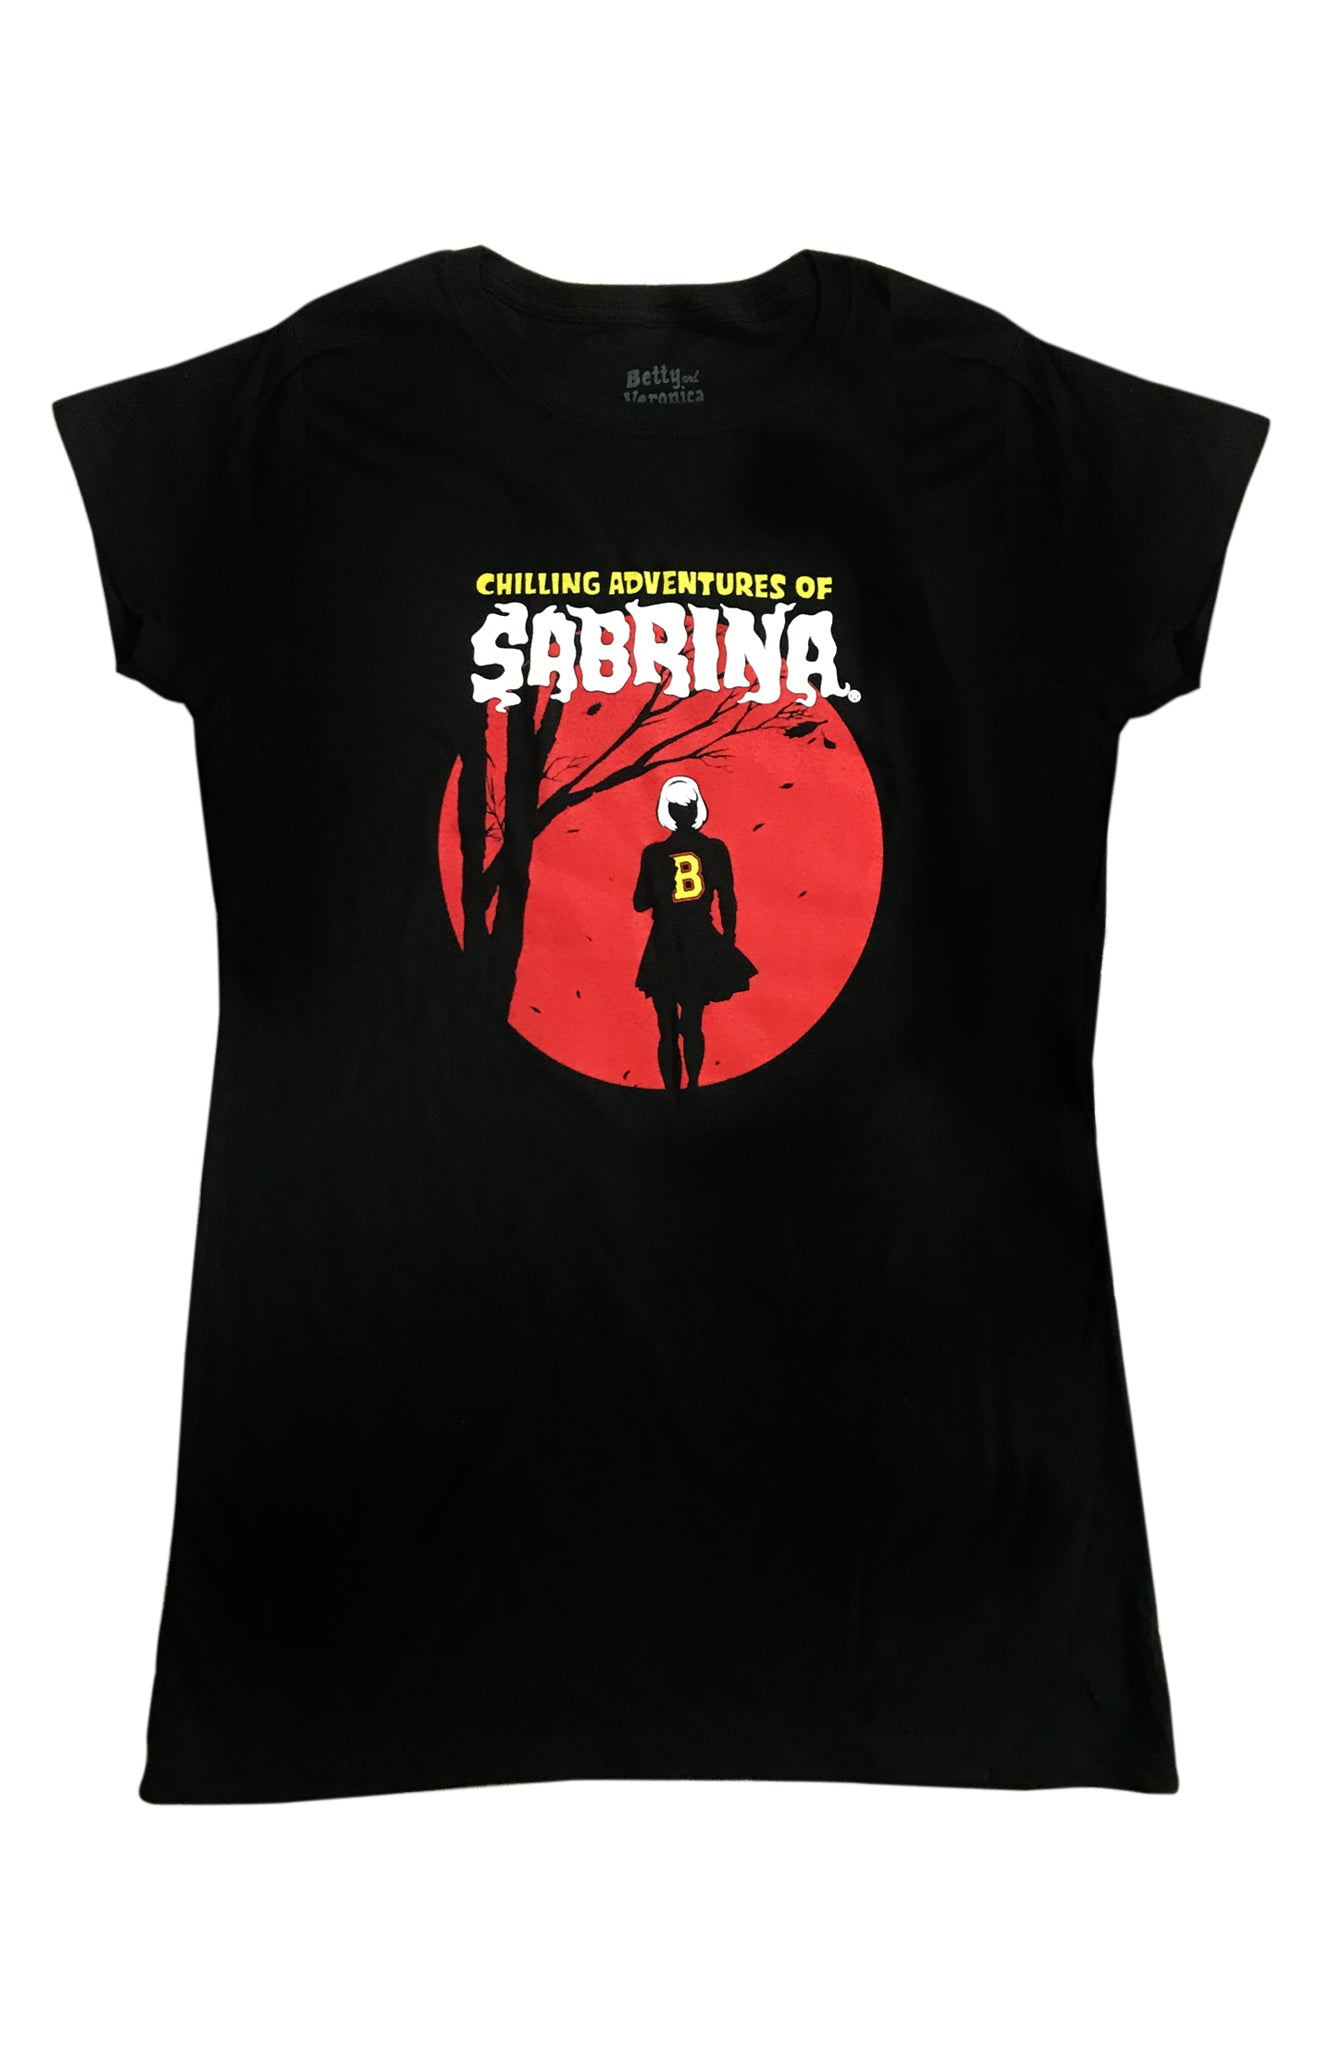 Chilling Adventures of Sabrina Tee - Women's